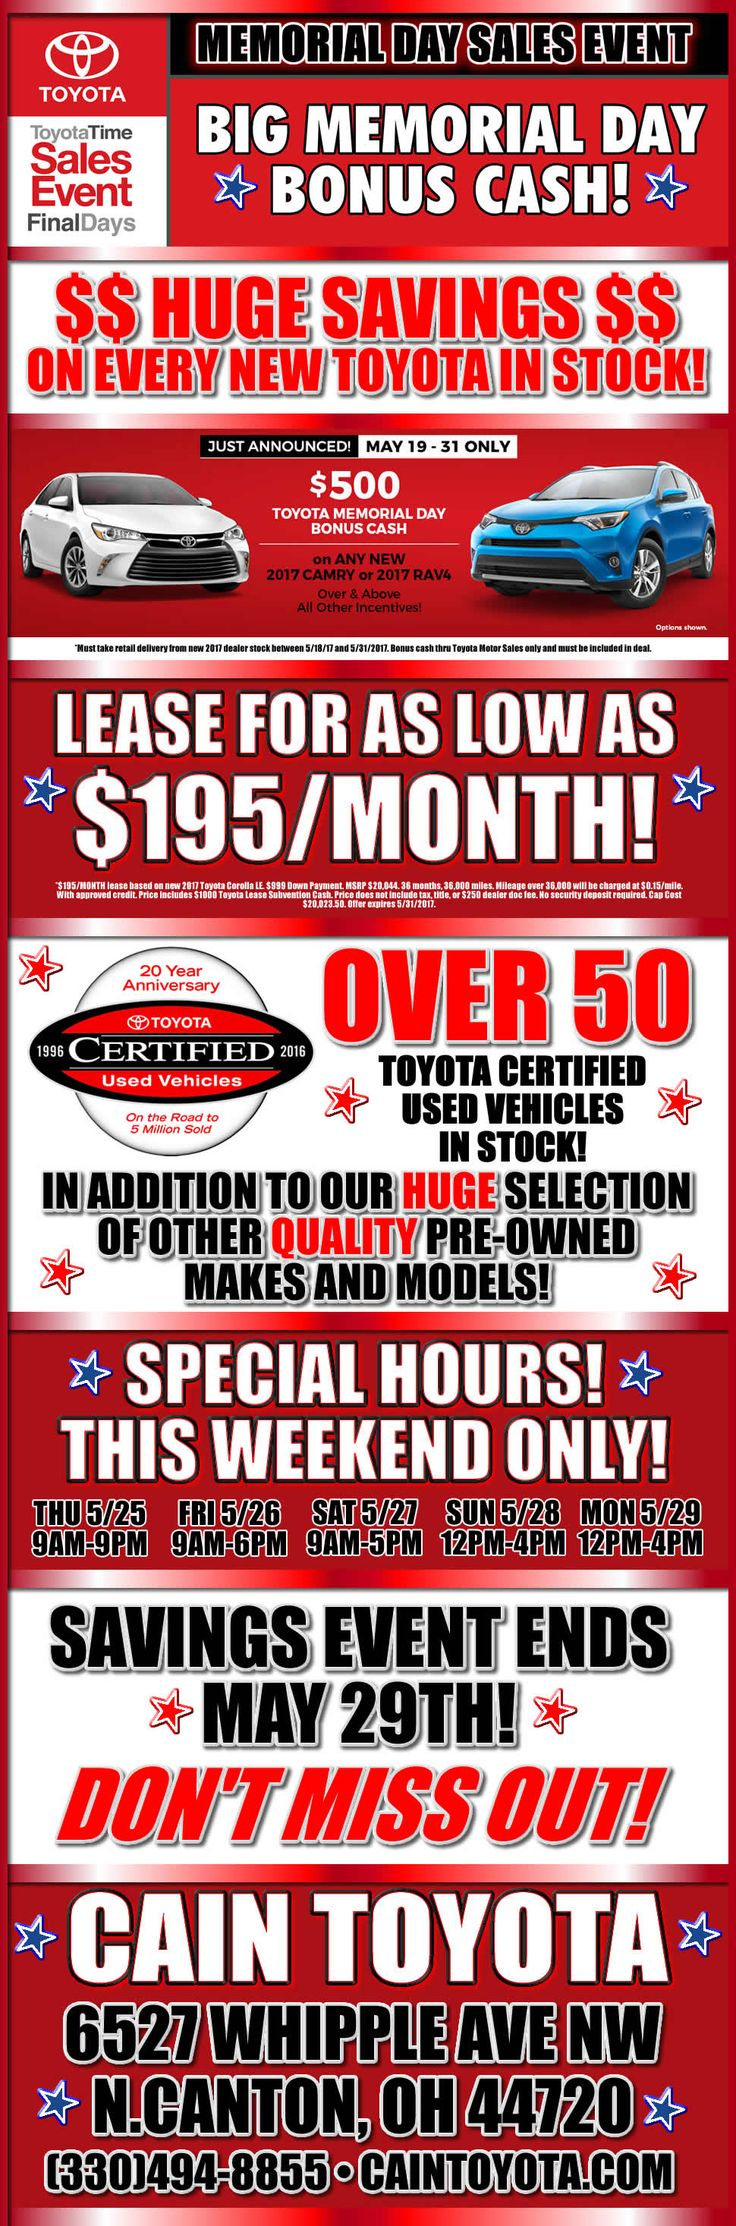 Our Memorial Weekend sales event is on NOW! Stop in and check out the deals!